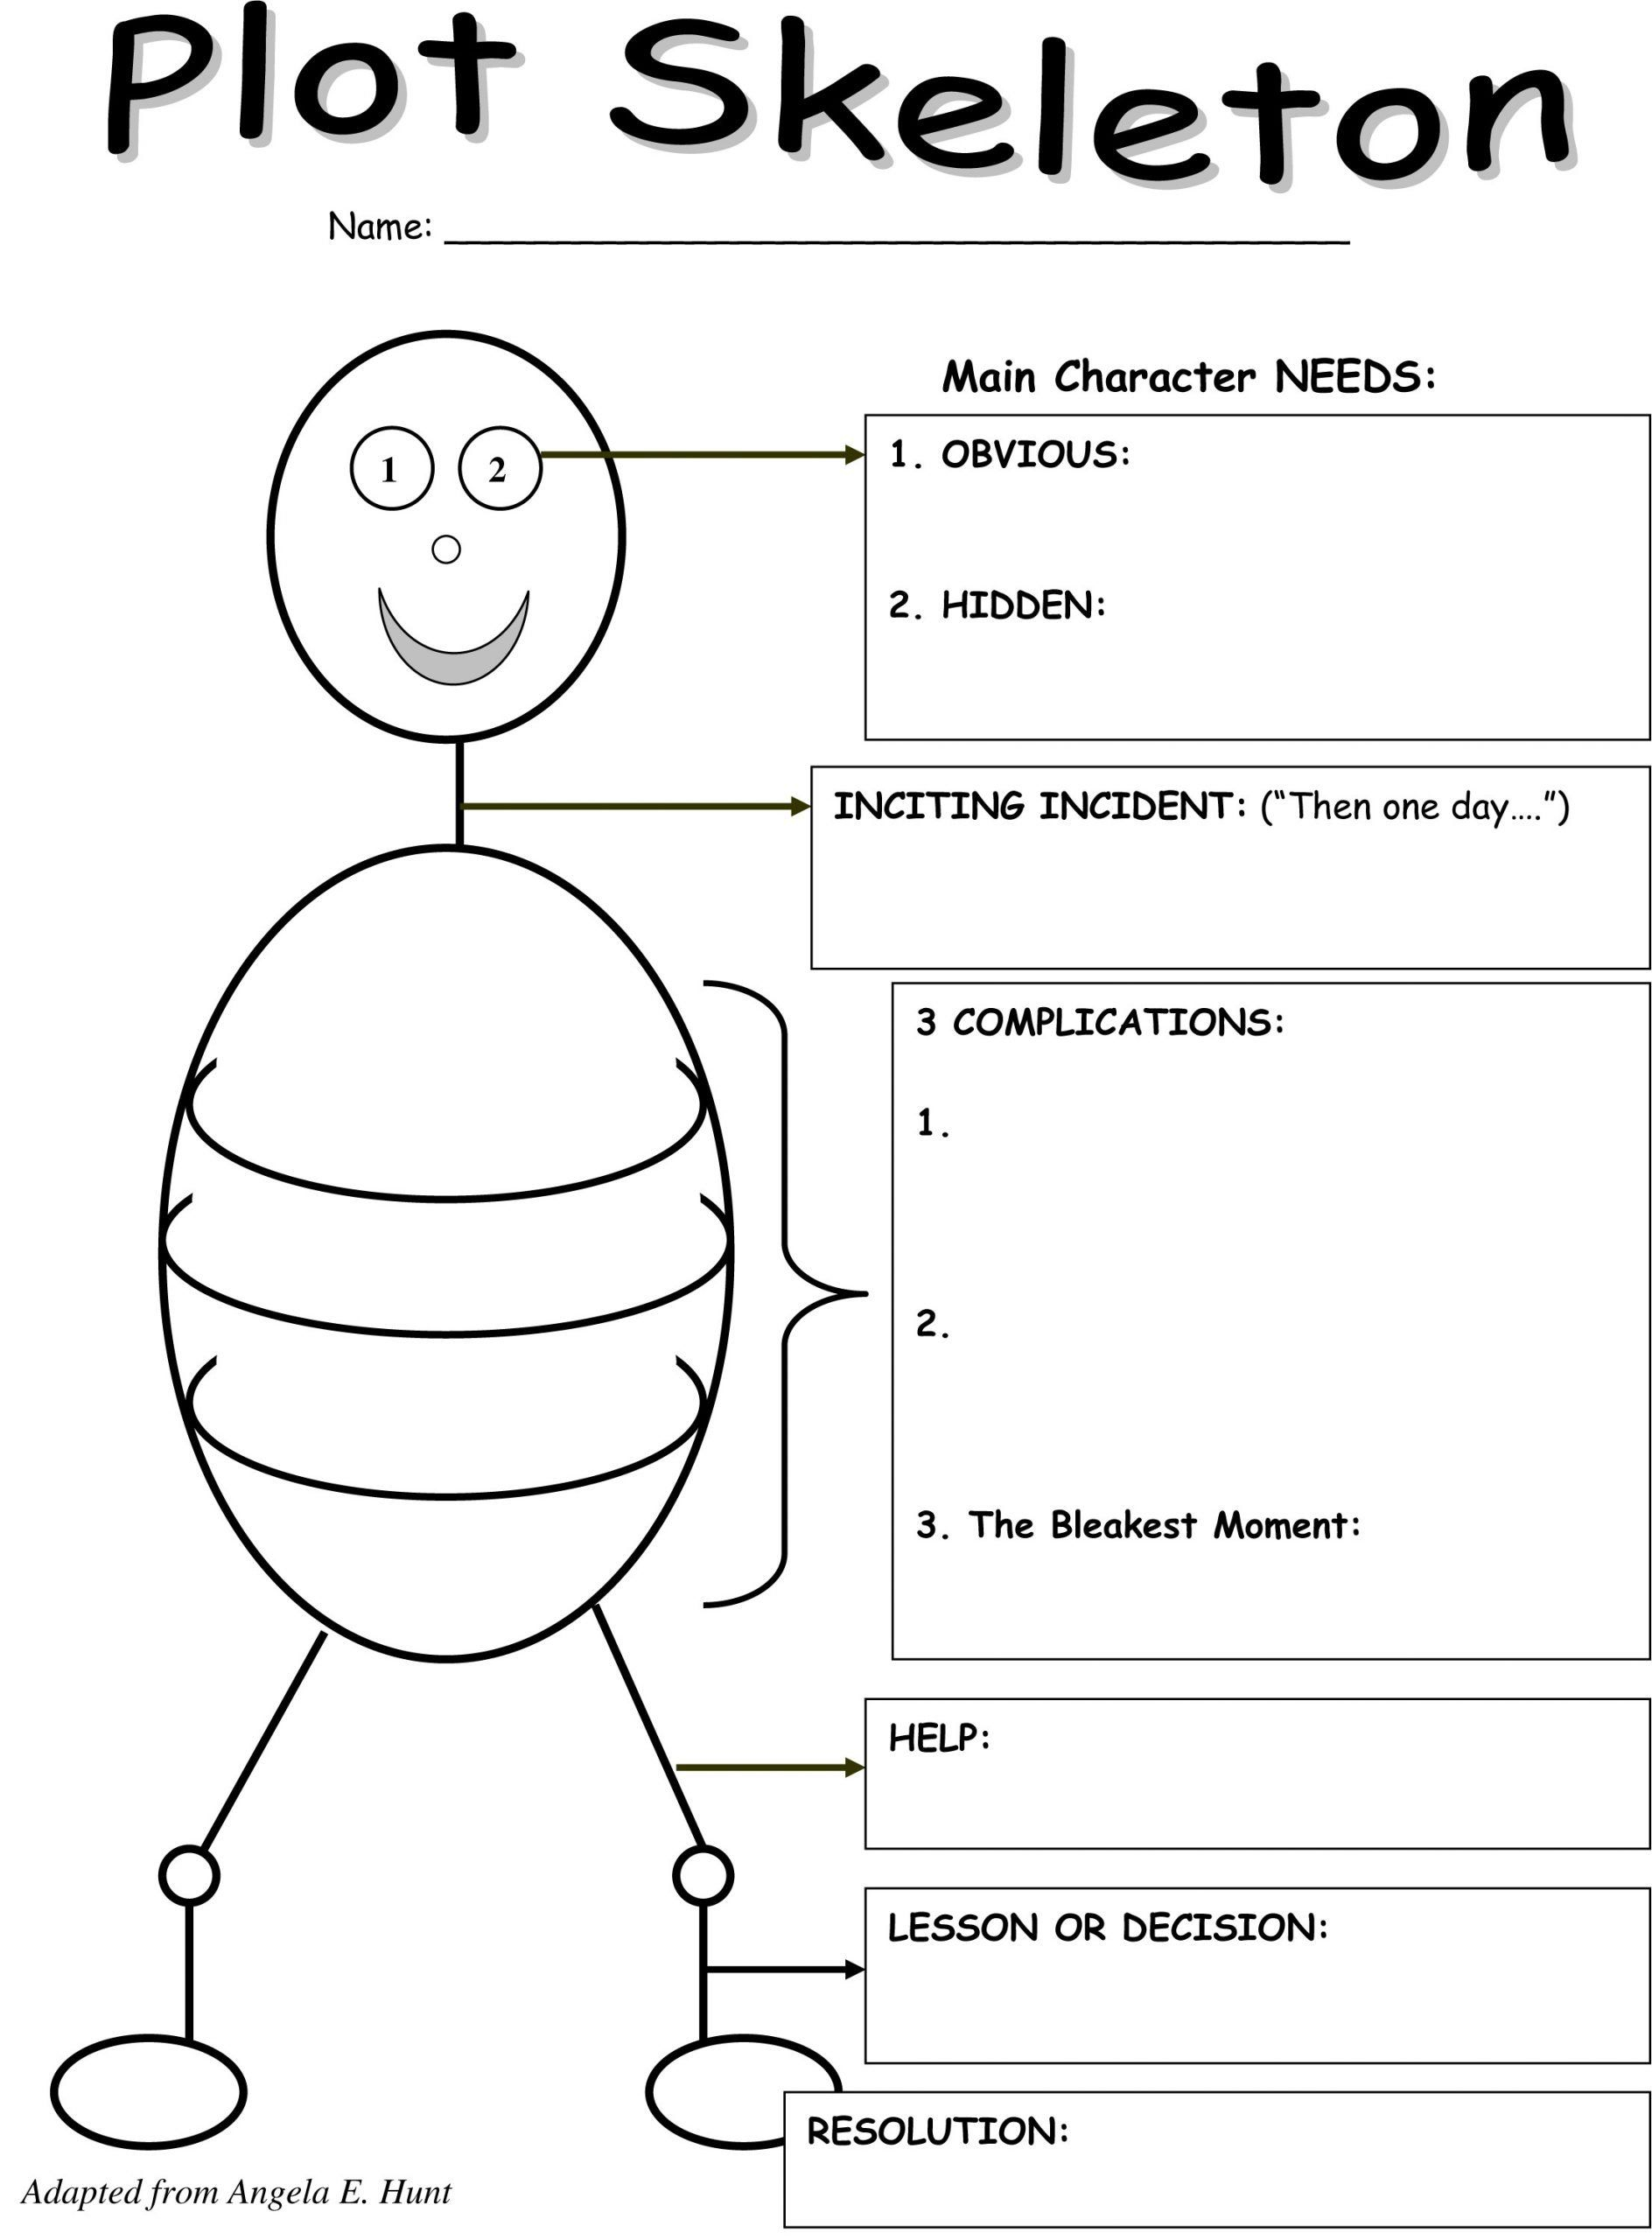 Brainstorming Story Ideas Worksheet The Plot Thickens A